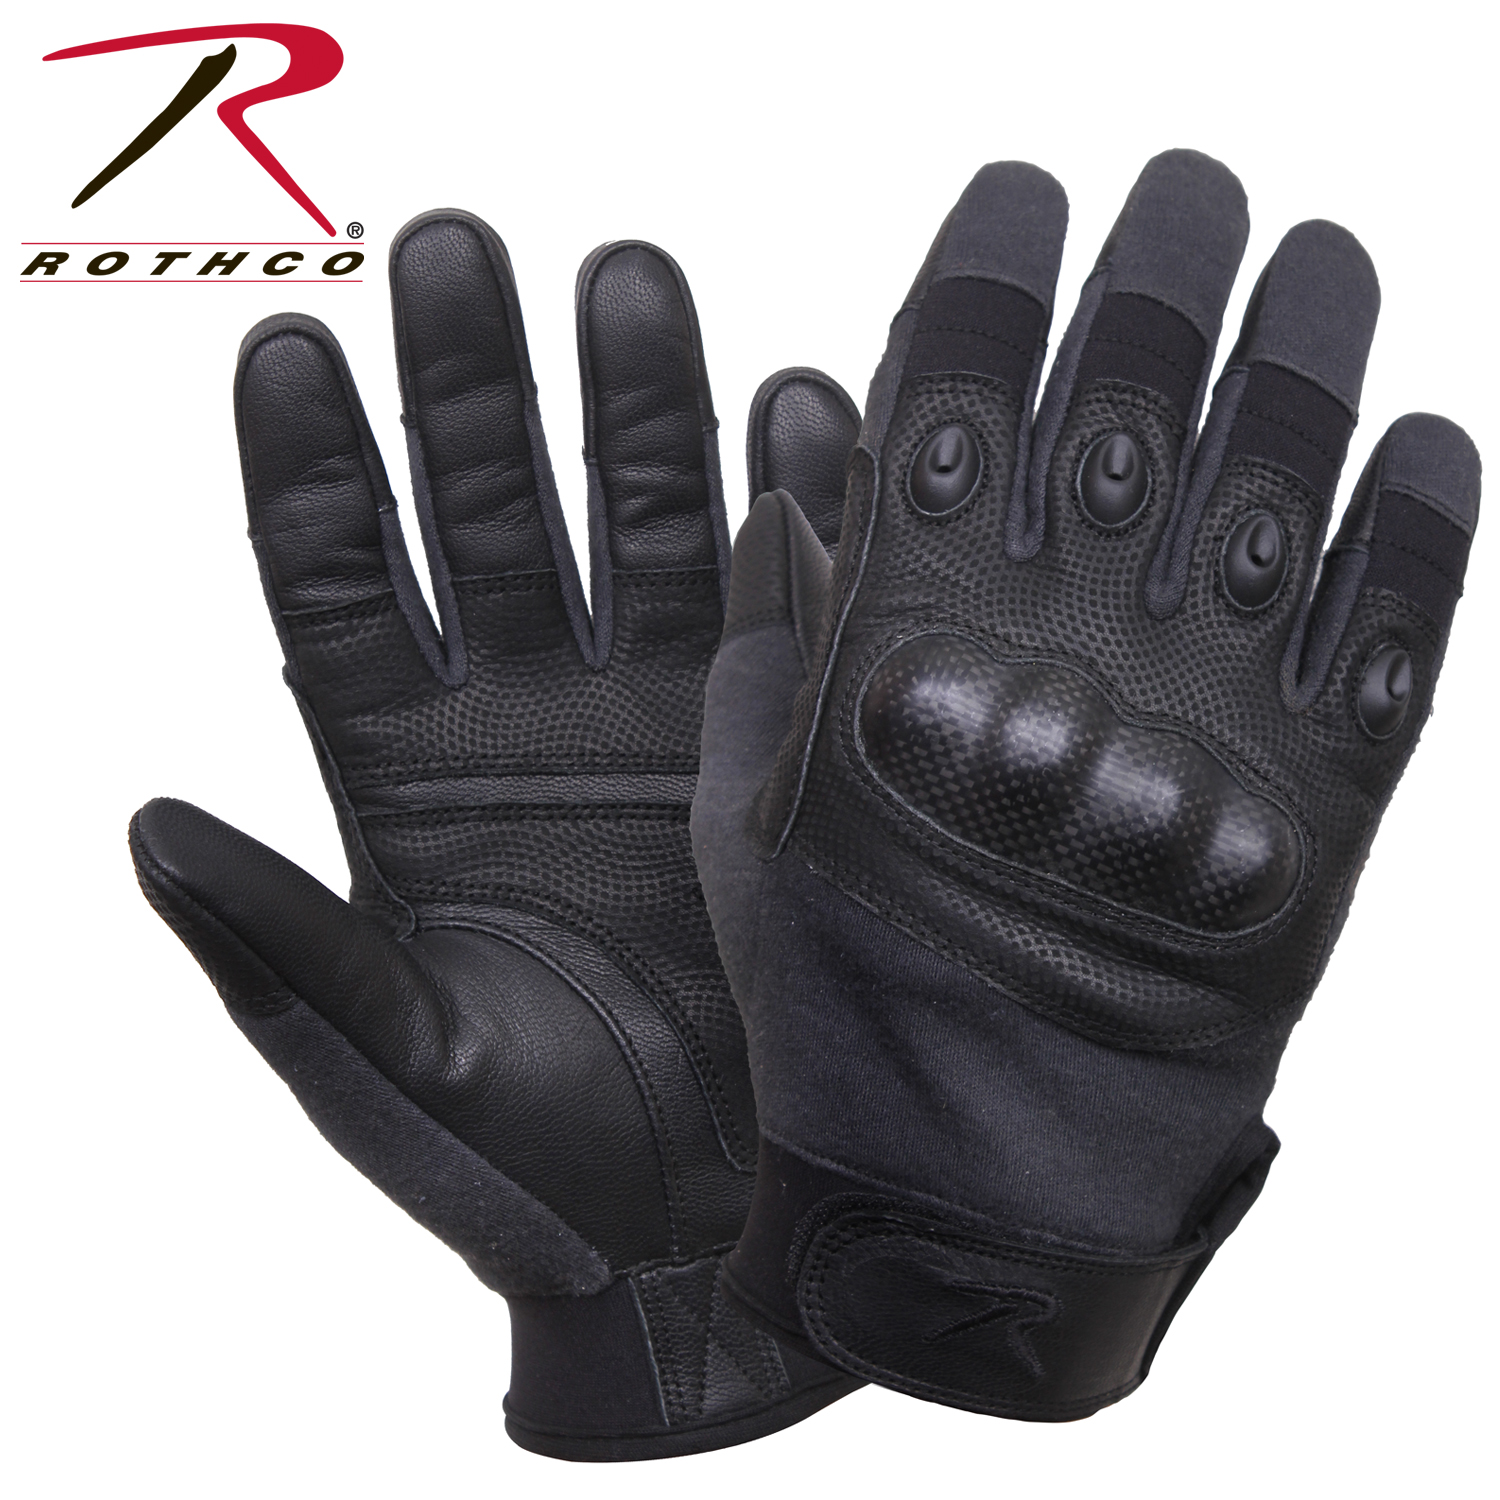 Rothco S Carbon Fiber Hard Knuckle Cut Fire Resistant Gloves